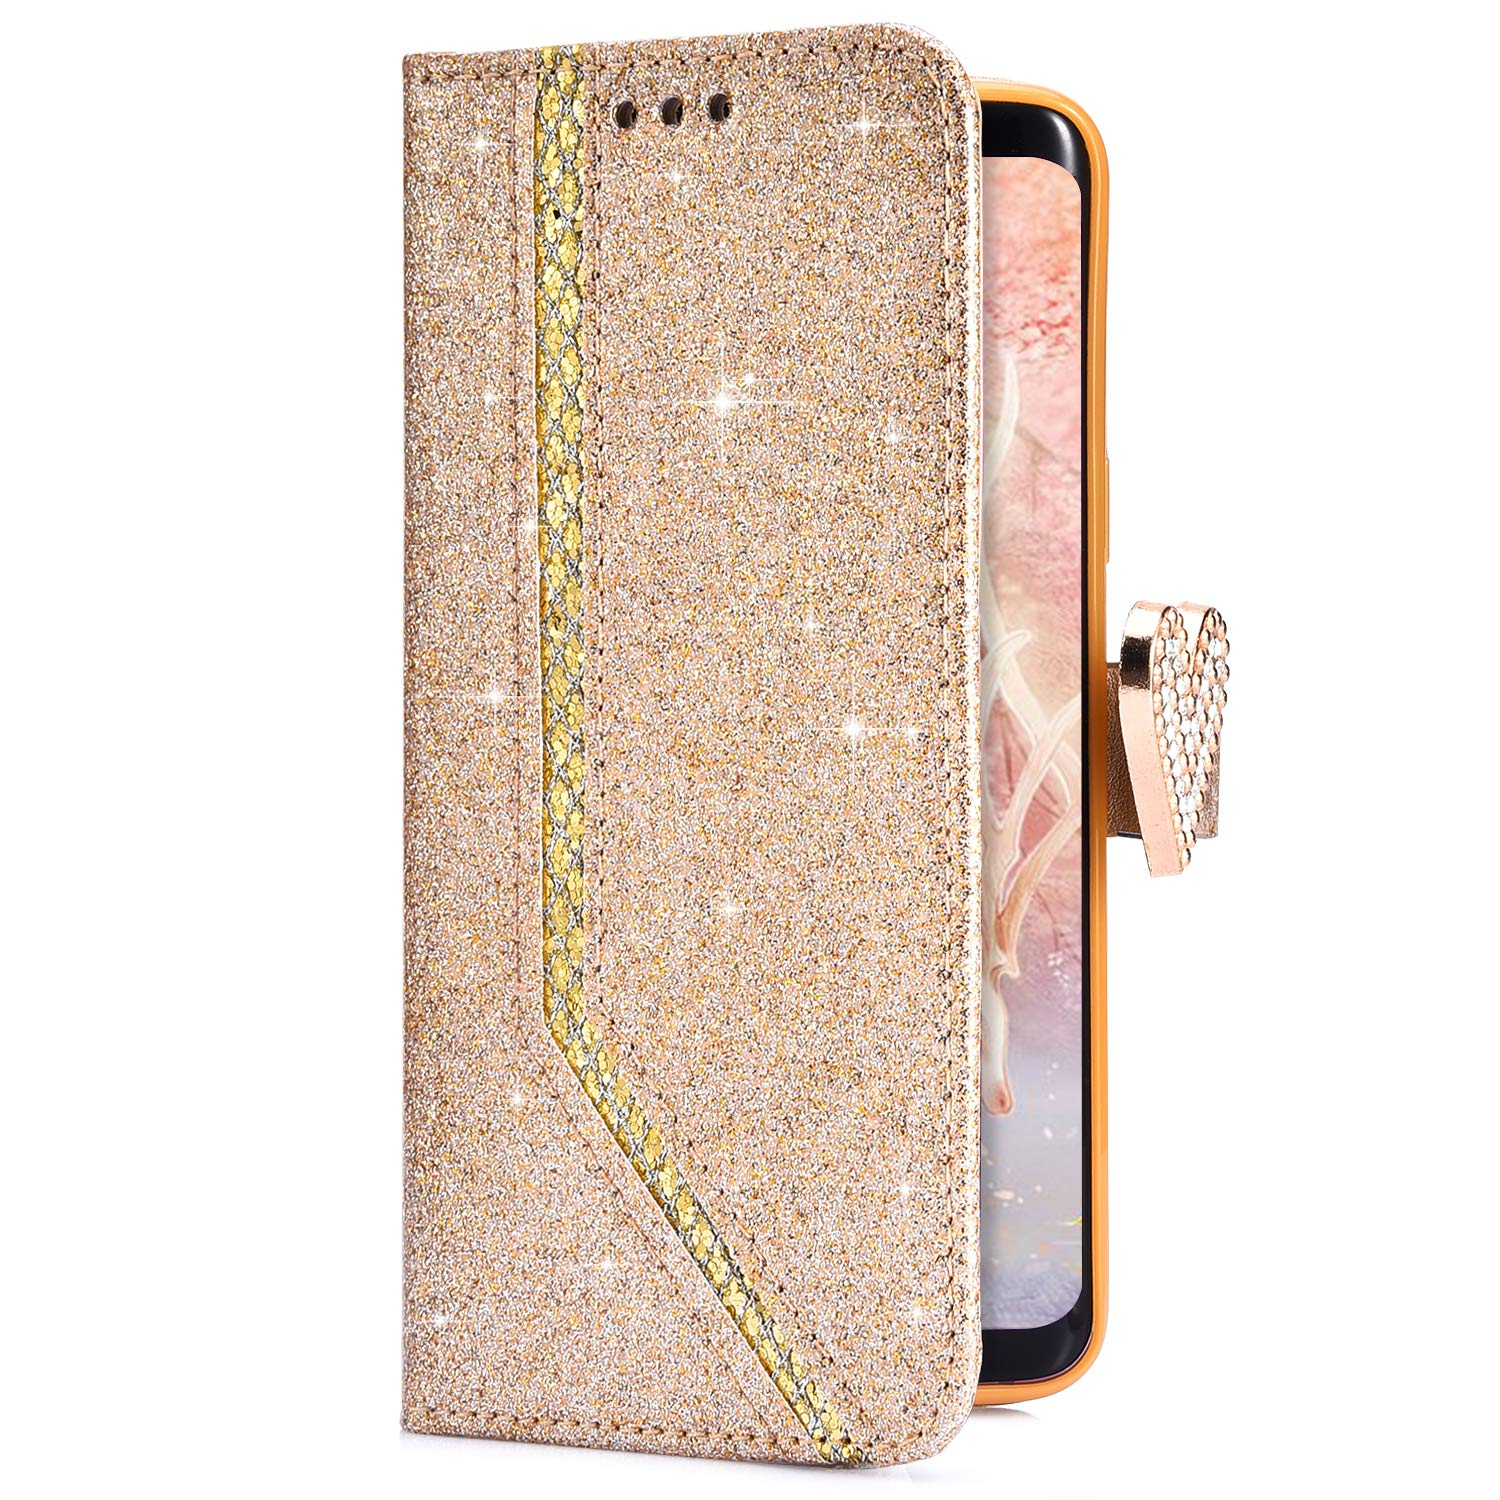 Uposao Compatible with Samsung Galaxy S7 Wallet Flip Case Bling Glitter Love Heart Diamond Rhinestone Luxury Sparkly Slim Leather Stand Case with Magnetic Closure Card Slots, Black PYHT00031751